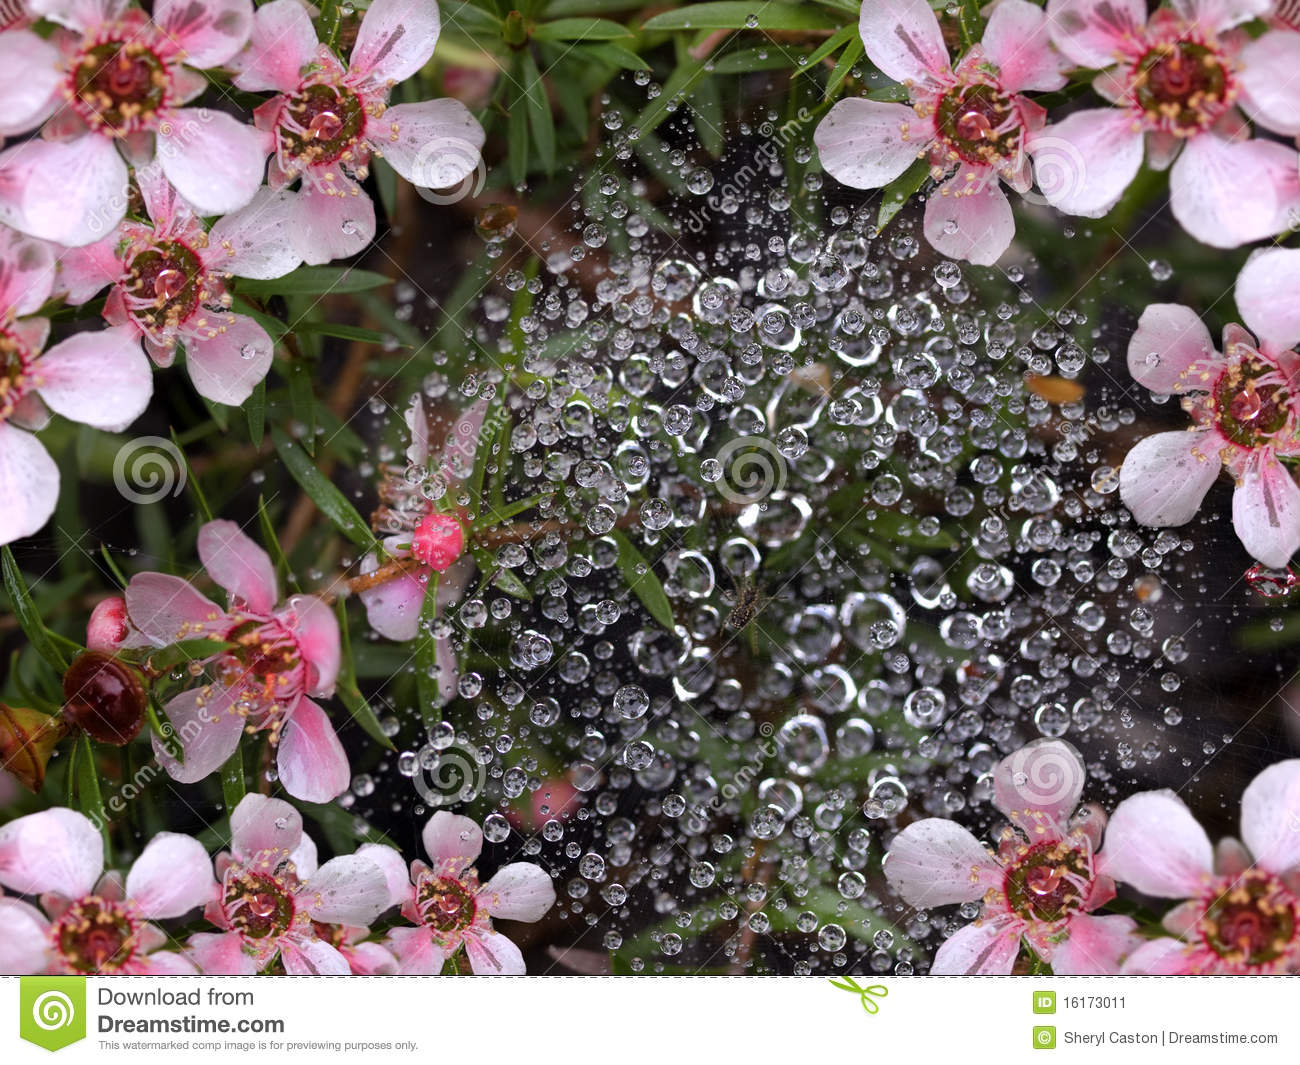 Spring Rain Water Drops On Spider Web Stock Image - Image